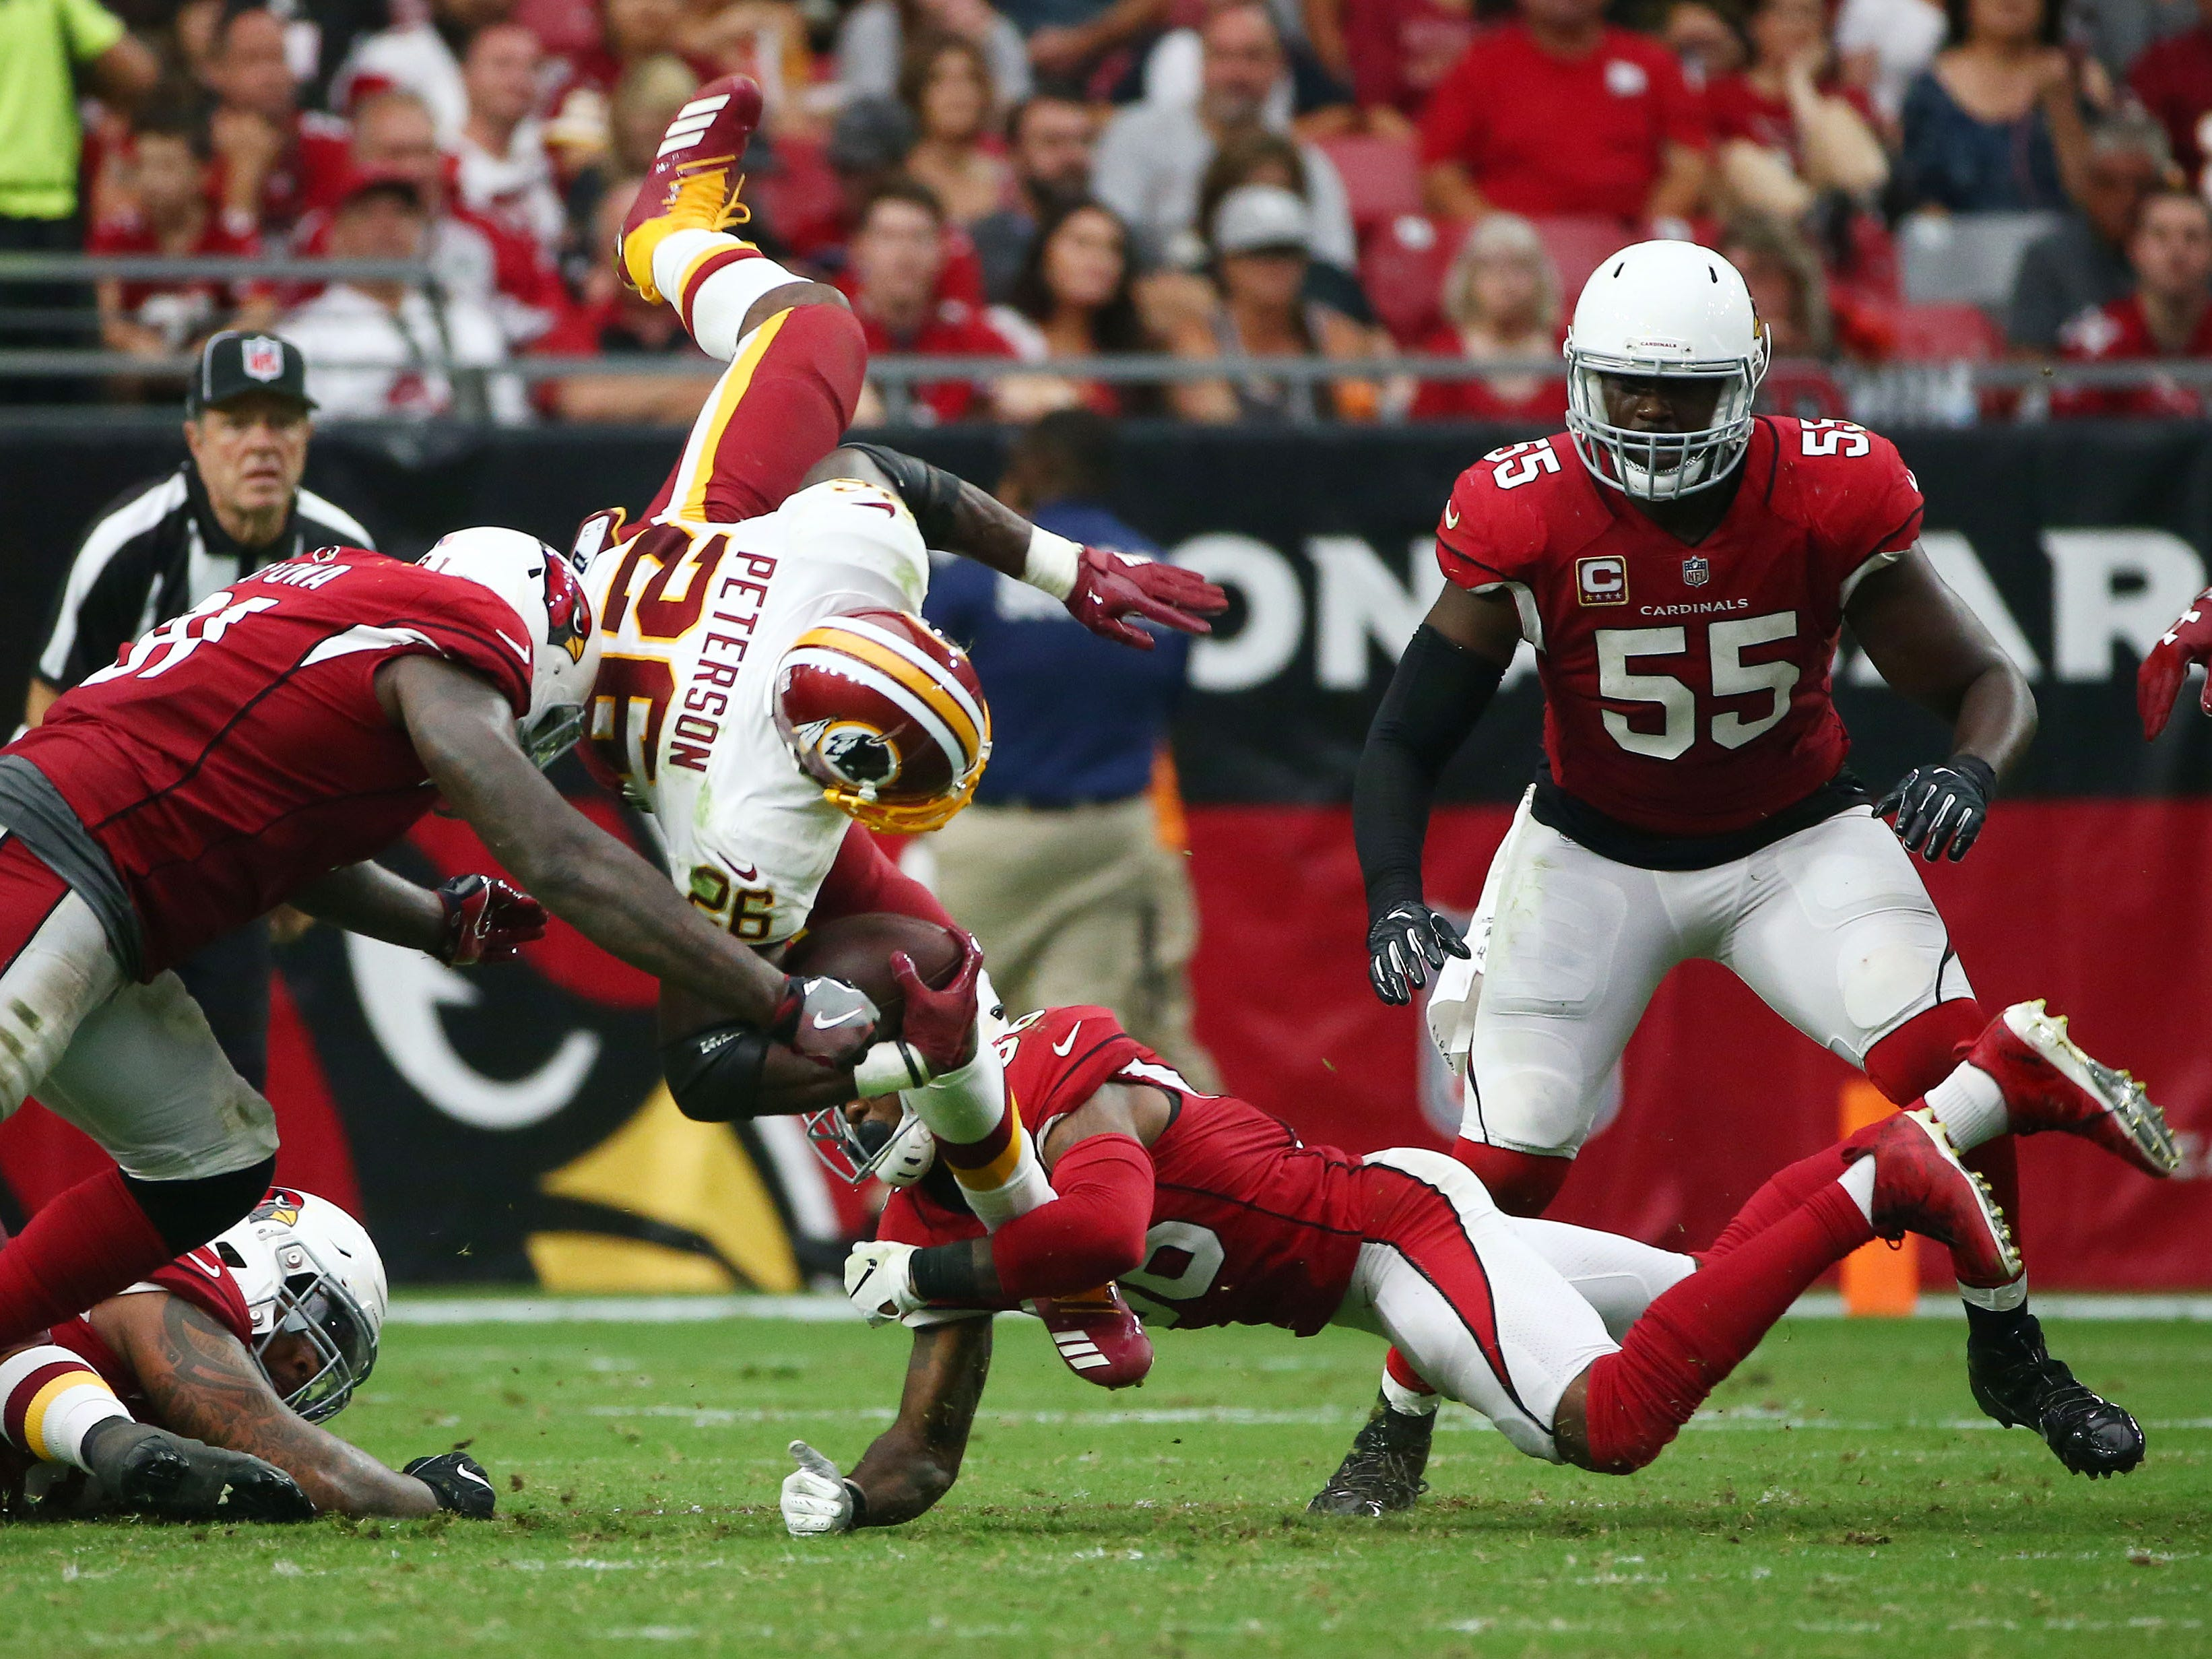 Arizona Cardinals Benson Mayowa (91) tackles Washington Redskins Adrian Peterson in the second half at State Farm Stadium.